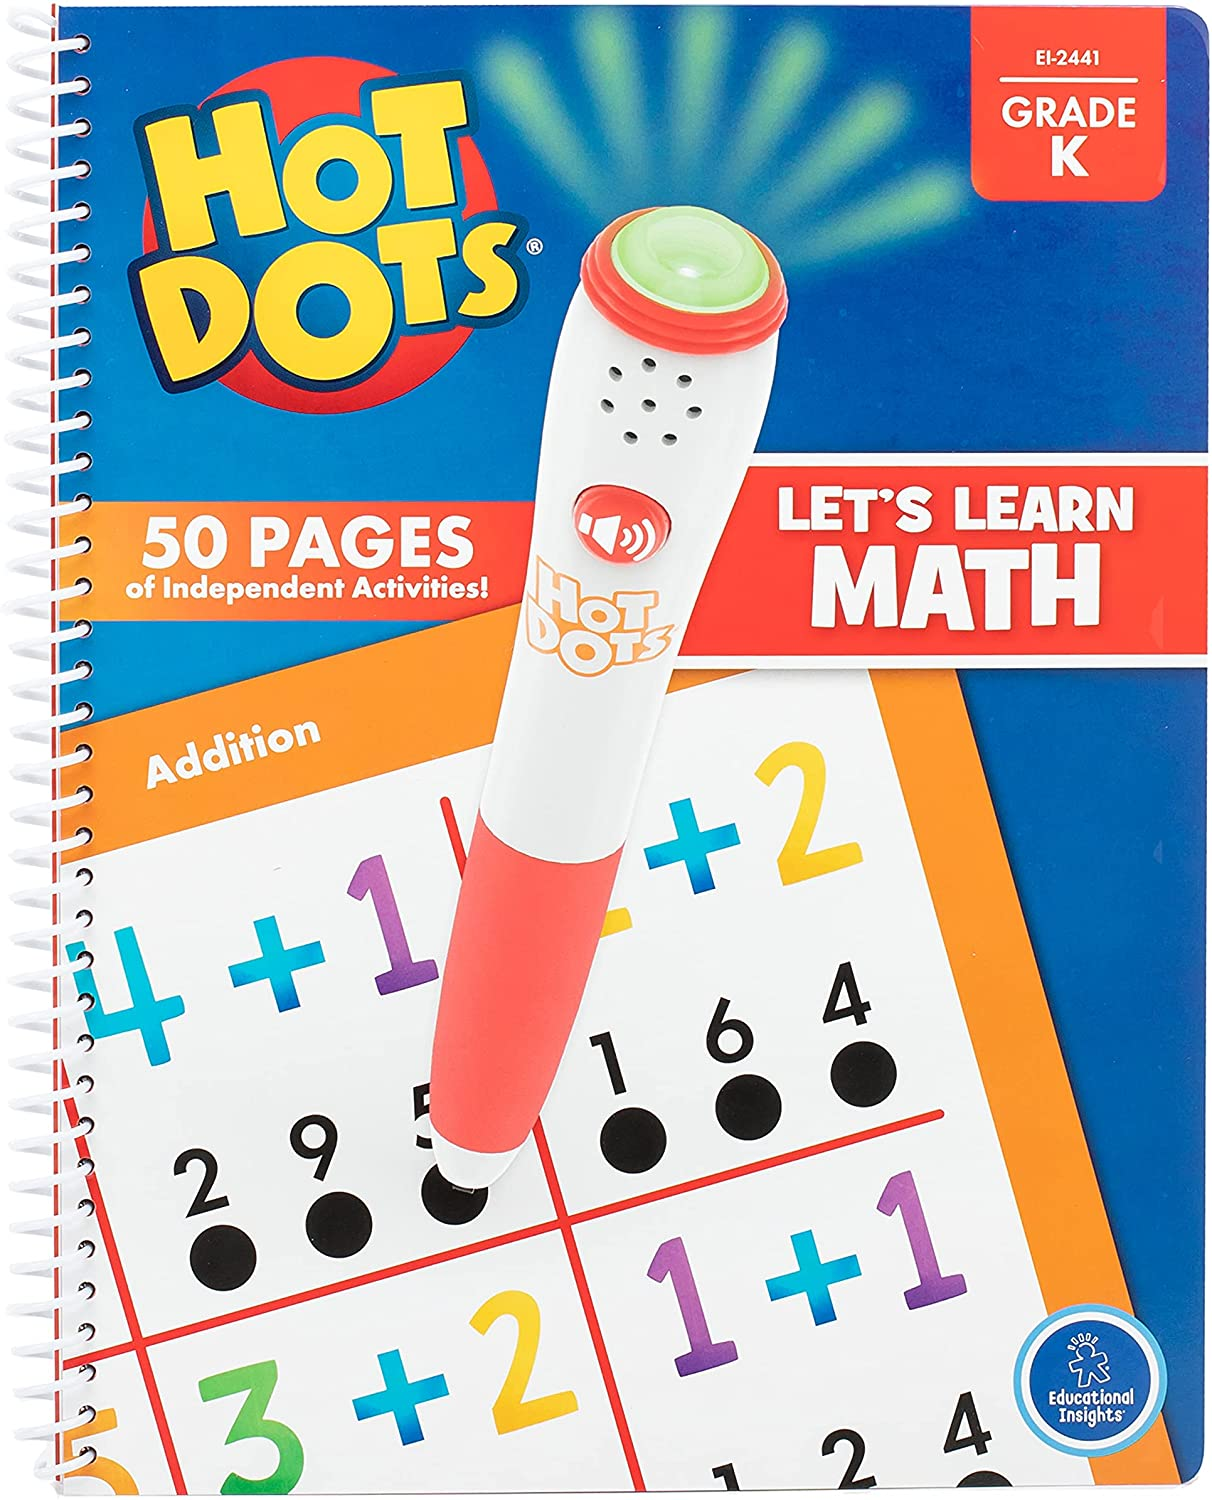 Hot Dots Let's Learn Reading & Math Sets